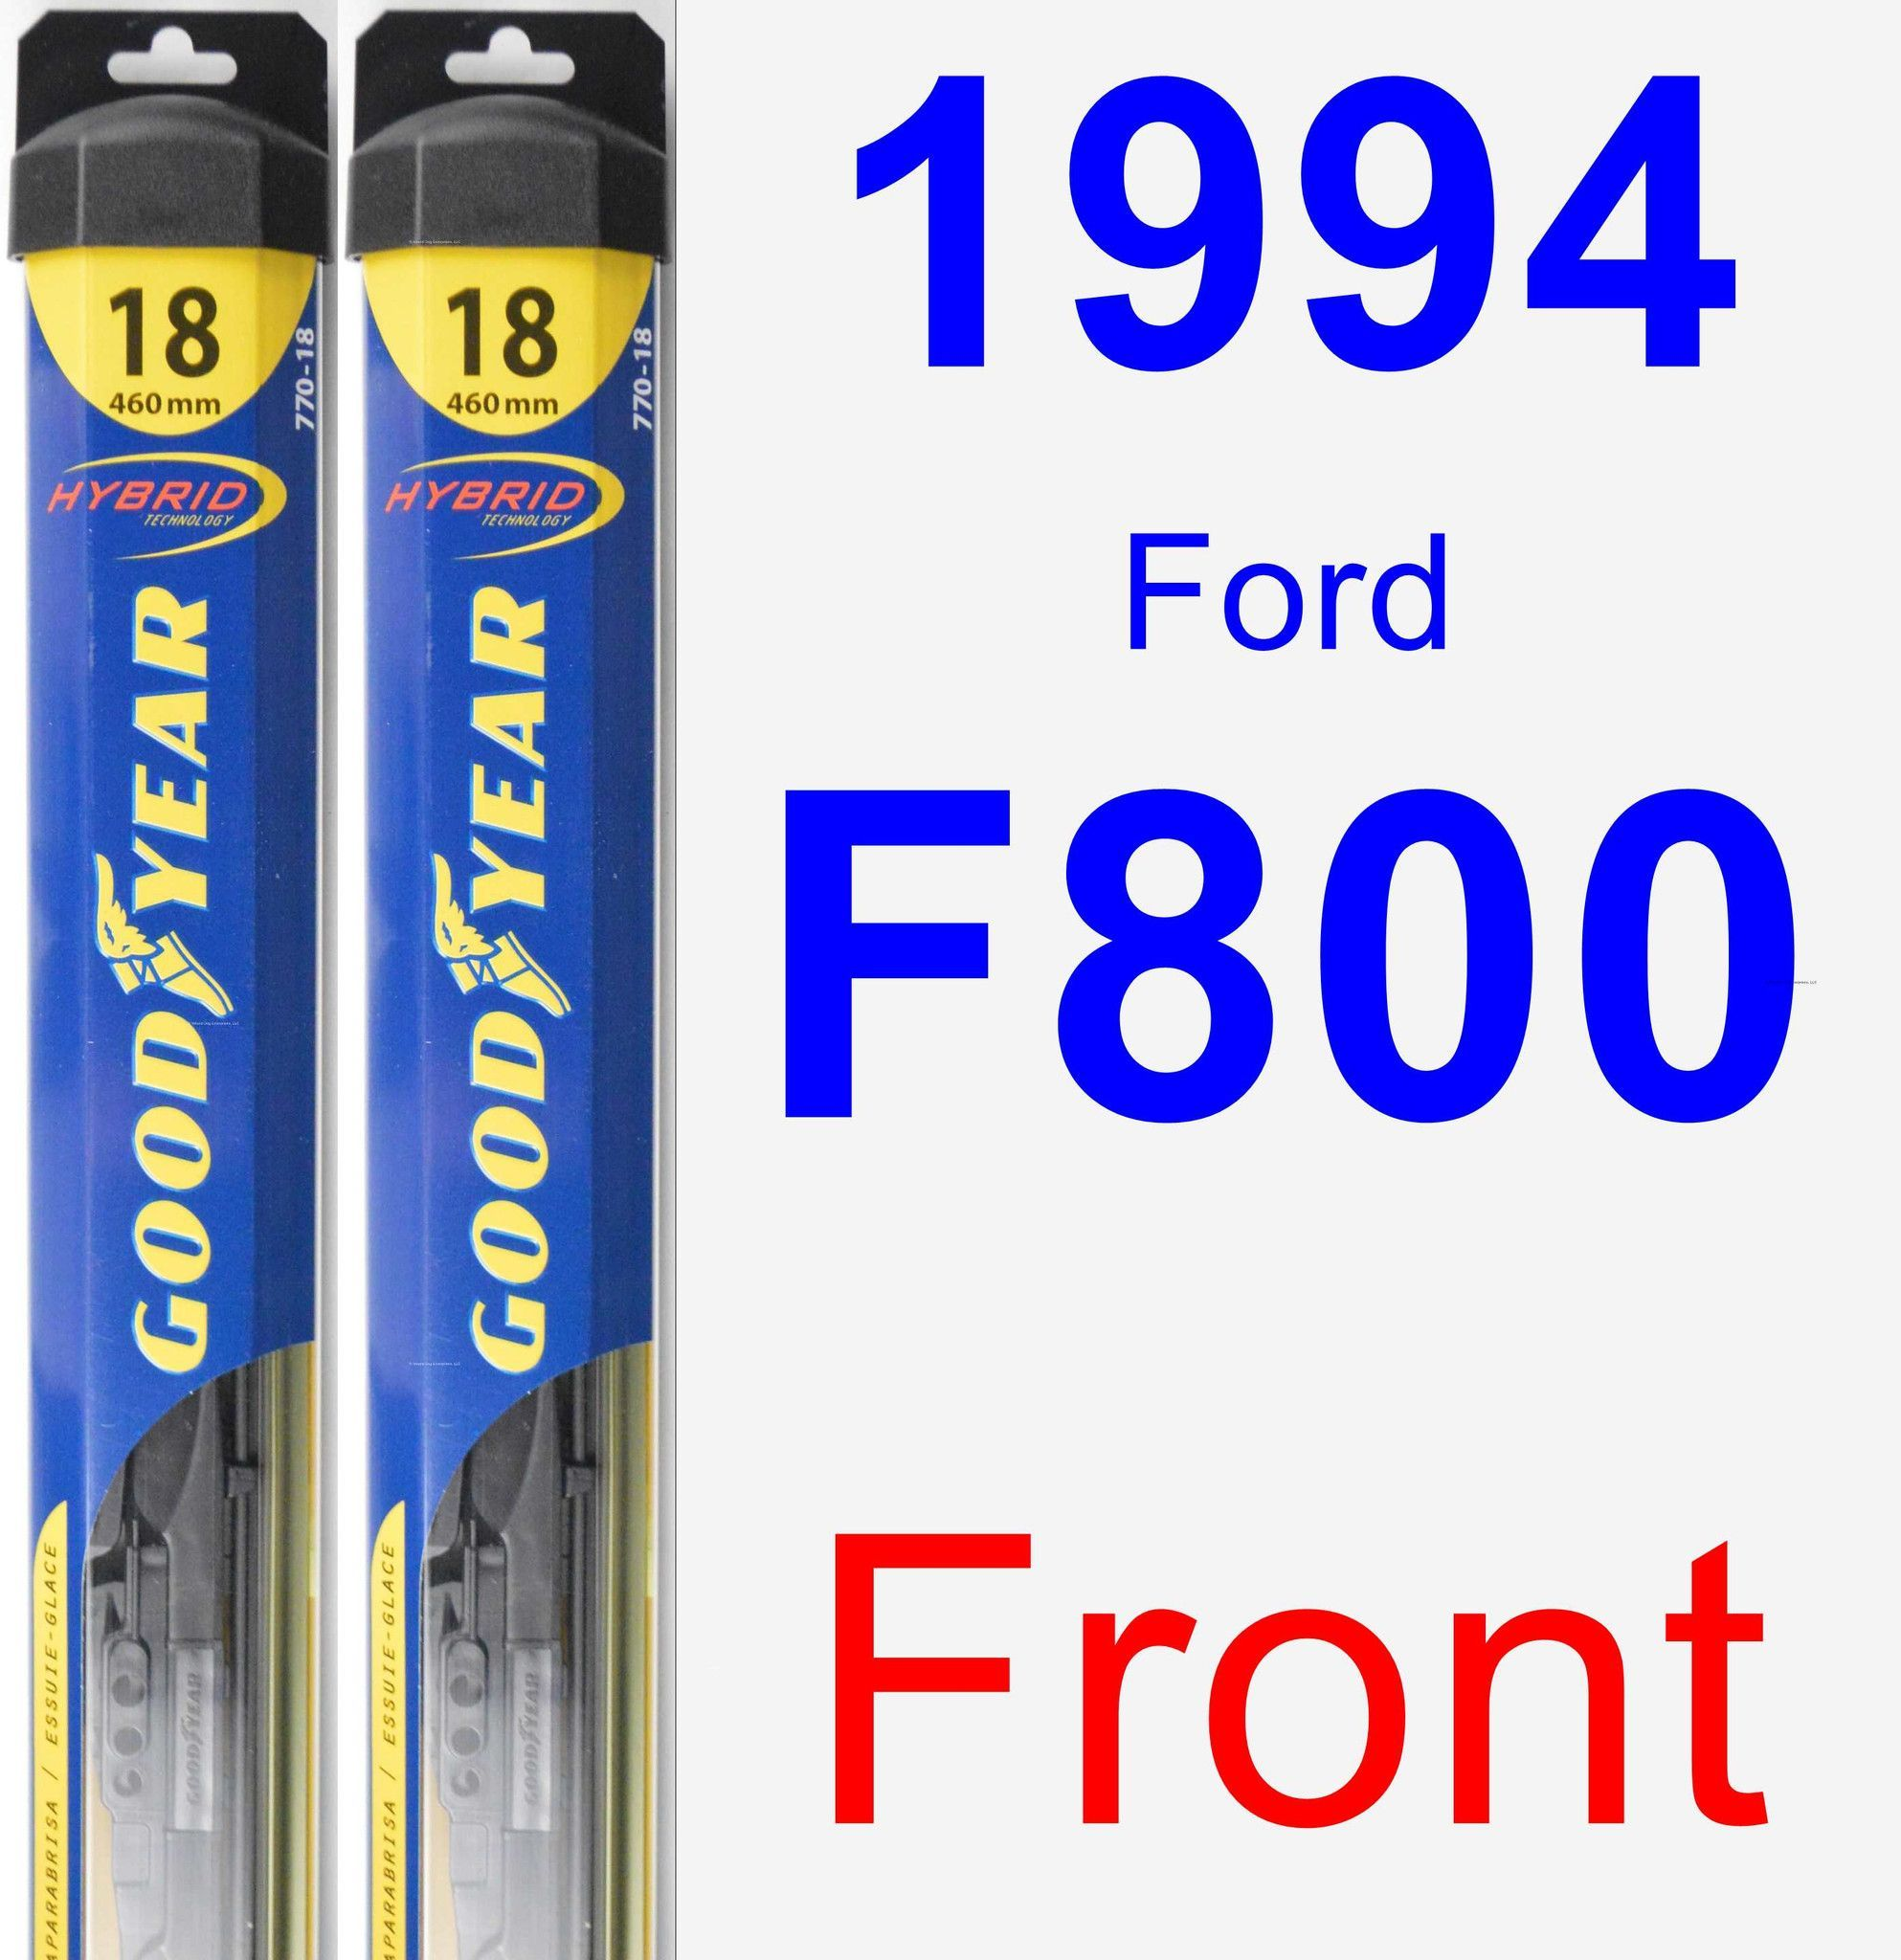 Front Wiper Blade Pack for 1994 Ford F800 - Hybrid